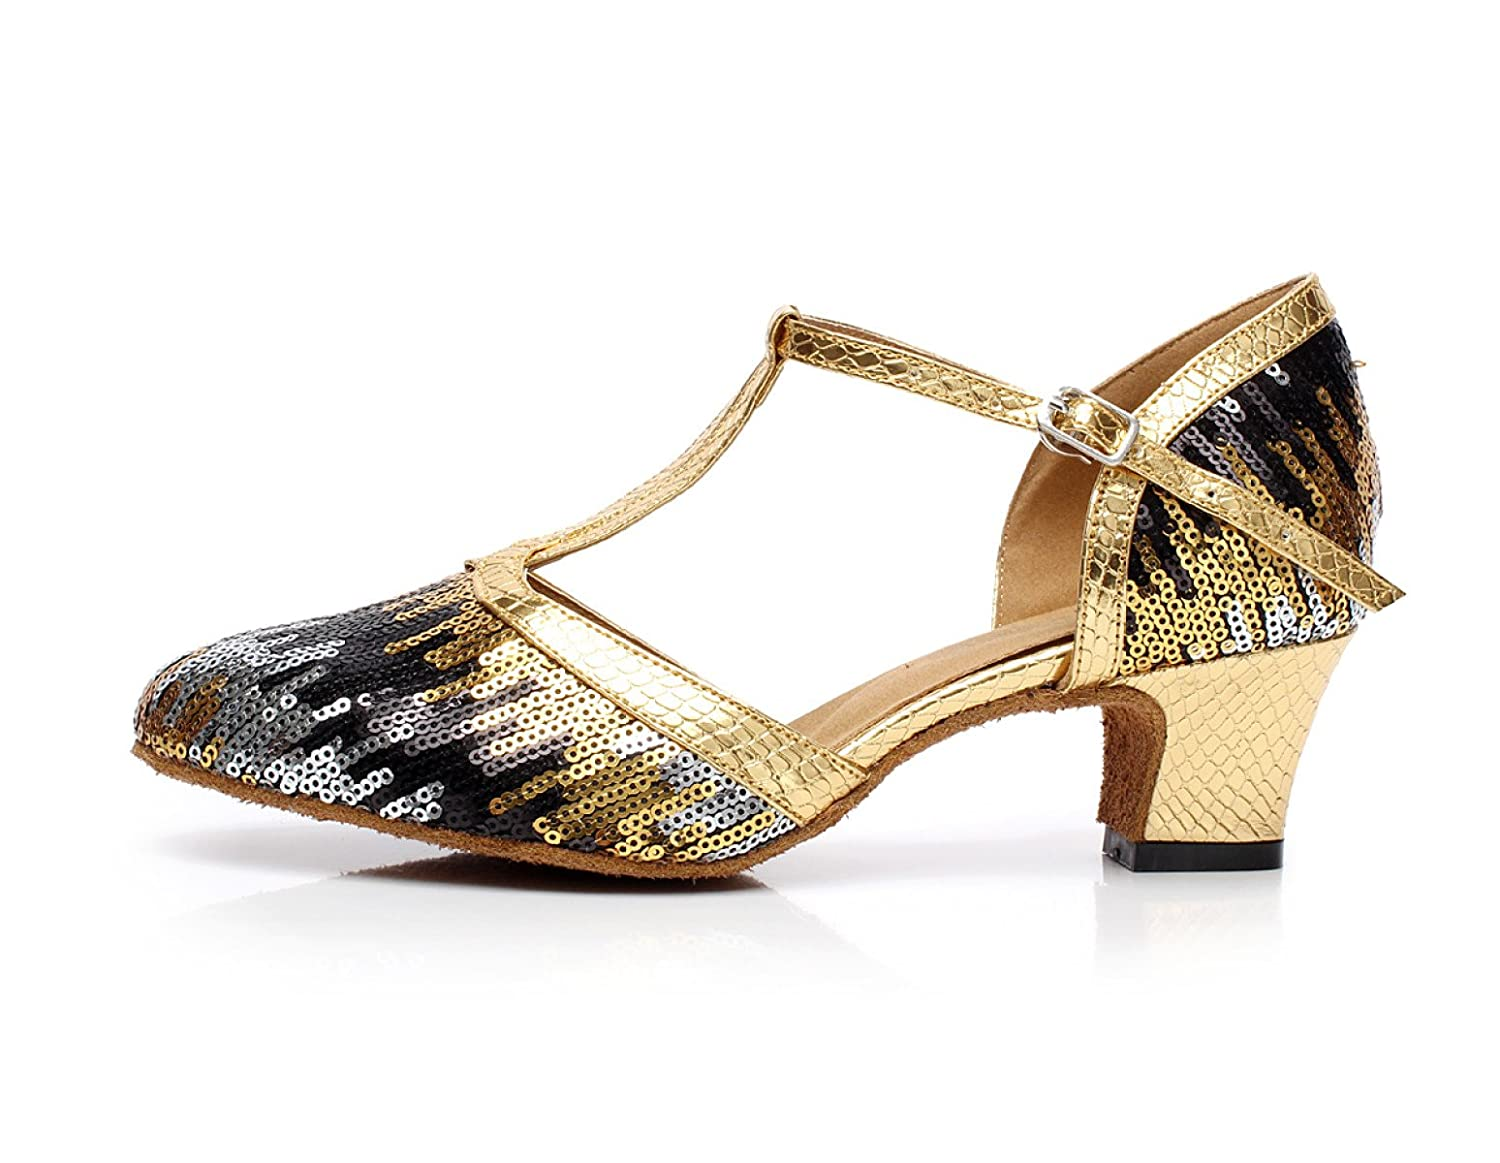 JSHOE Frauen Latin Dance Closed Toe High Heel UP - Leder Glitter Salsa Tango Modern Dance Schuhe,Gold-heeled6cm-UK5/EU37/Our38 - UP 555aa8